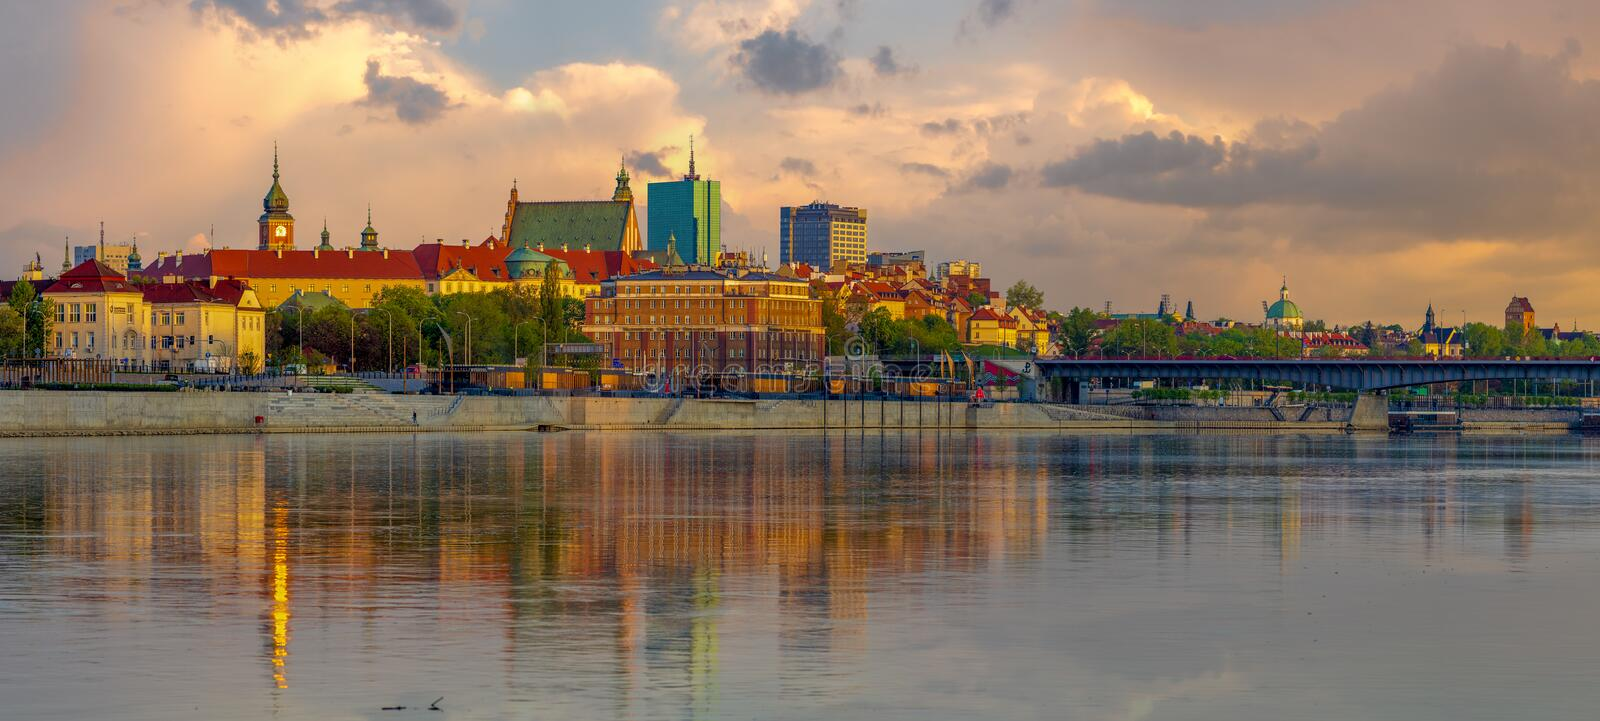 Download Panorama Of The Old Town In Warsaw In Poland Stock Image - Image of polish, river: 115849643